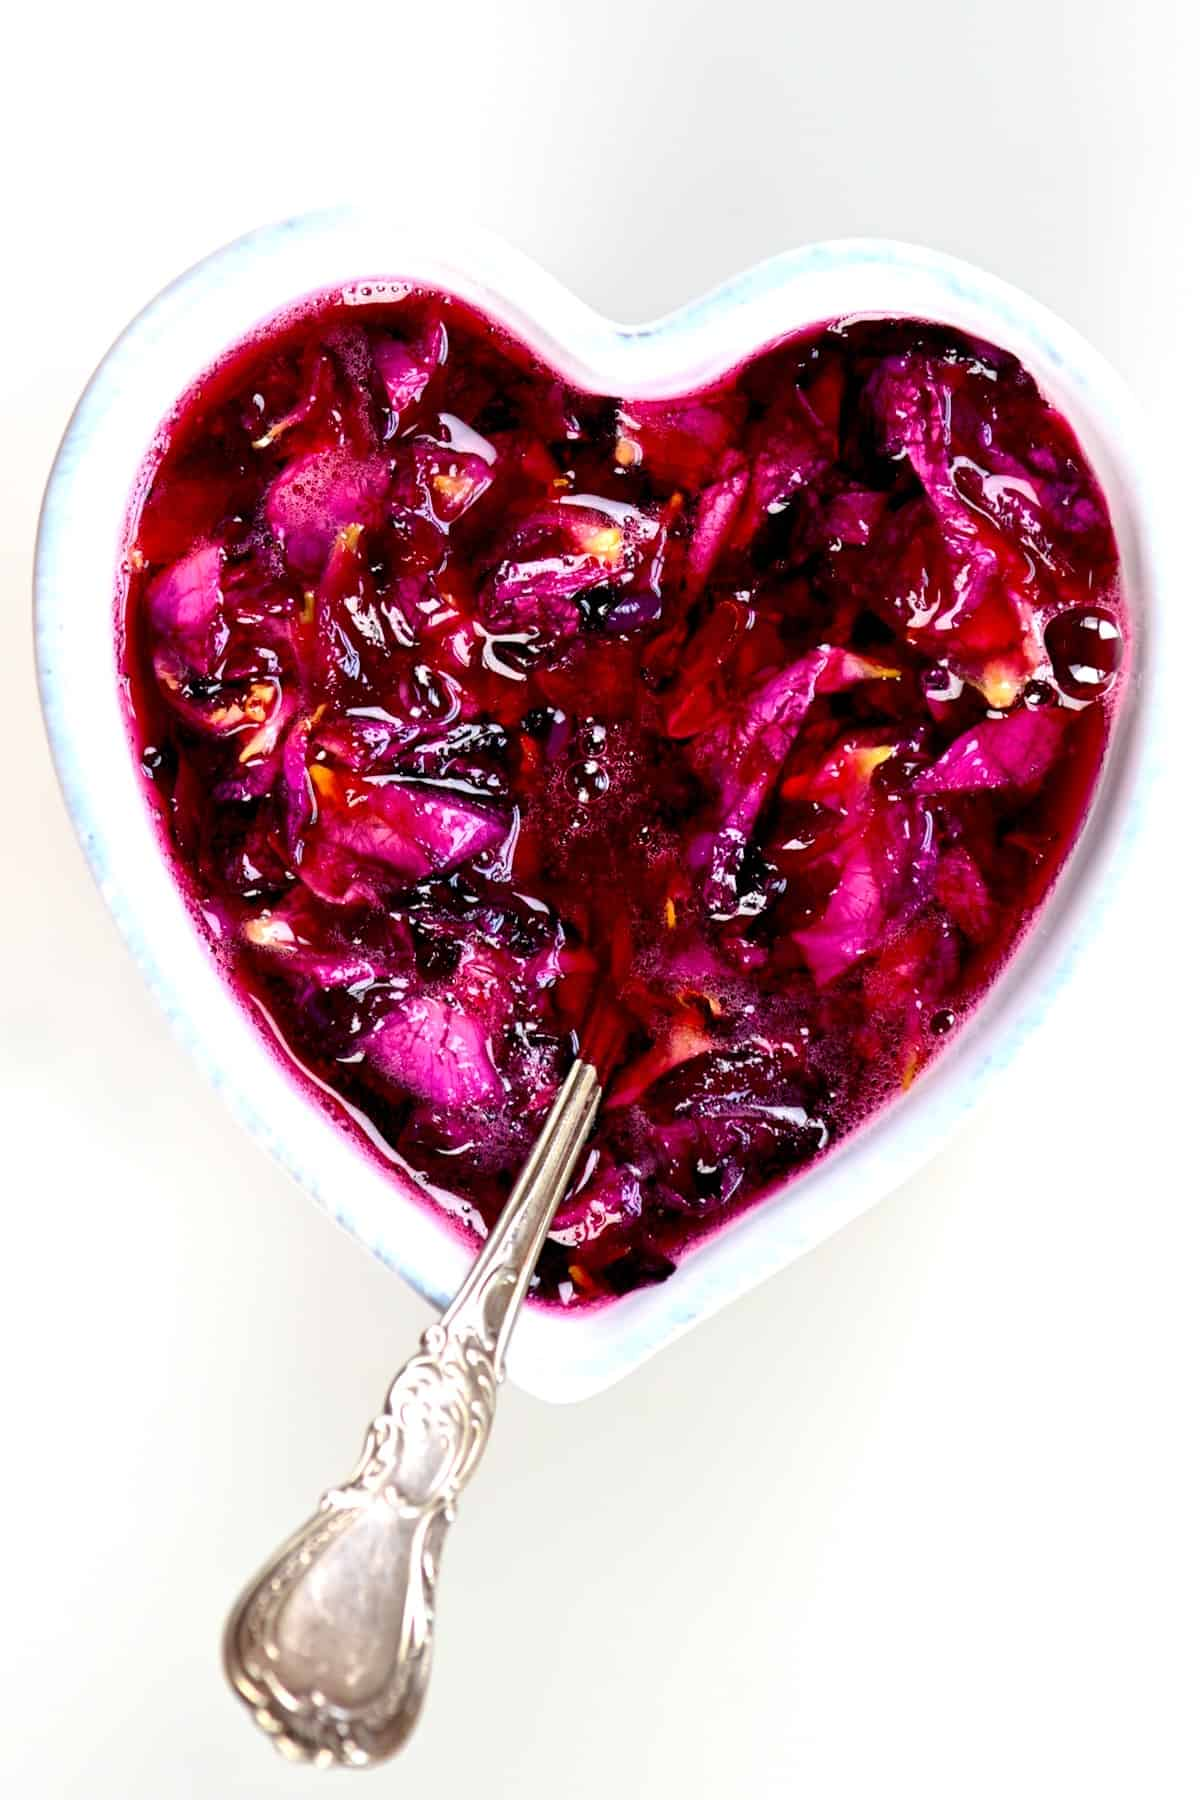 Rose Jam in a heart shaped bowl with a spoon